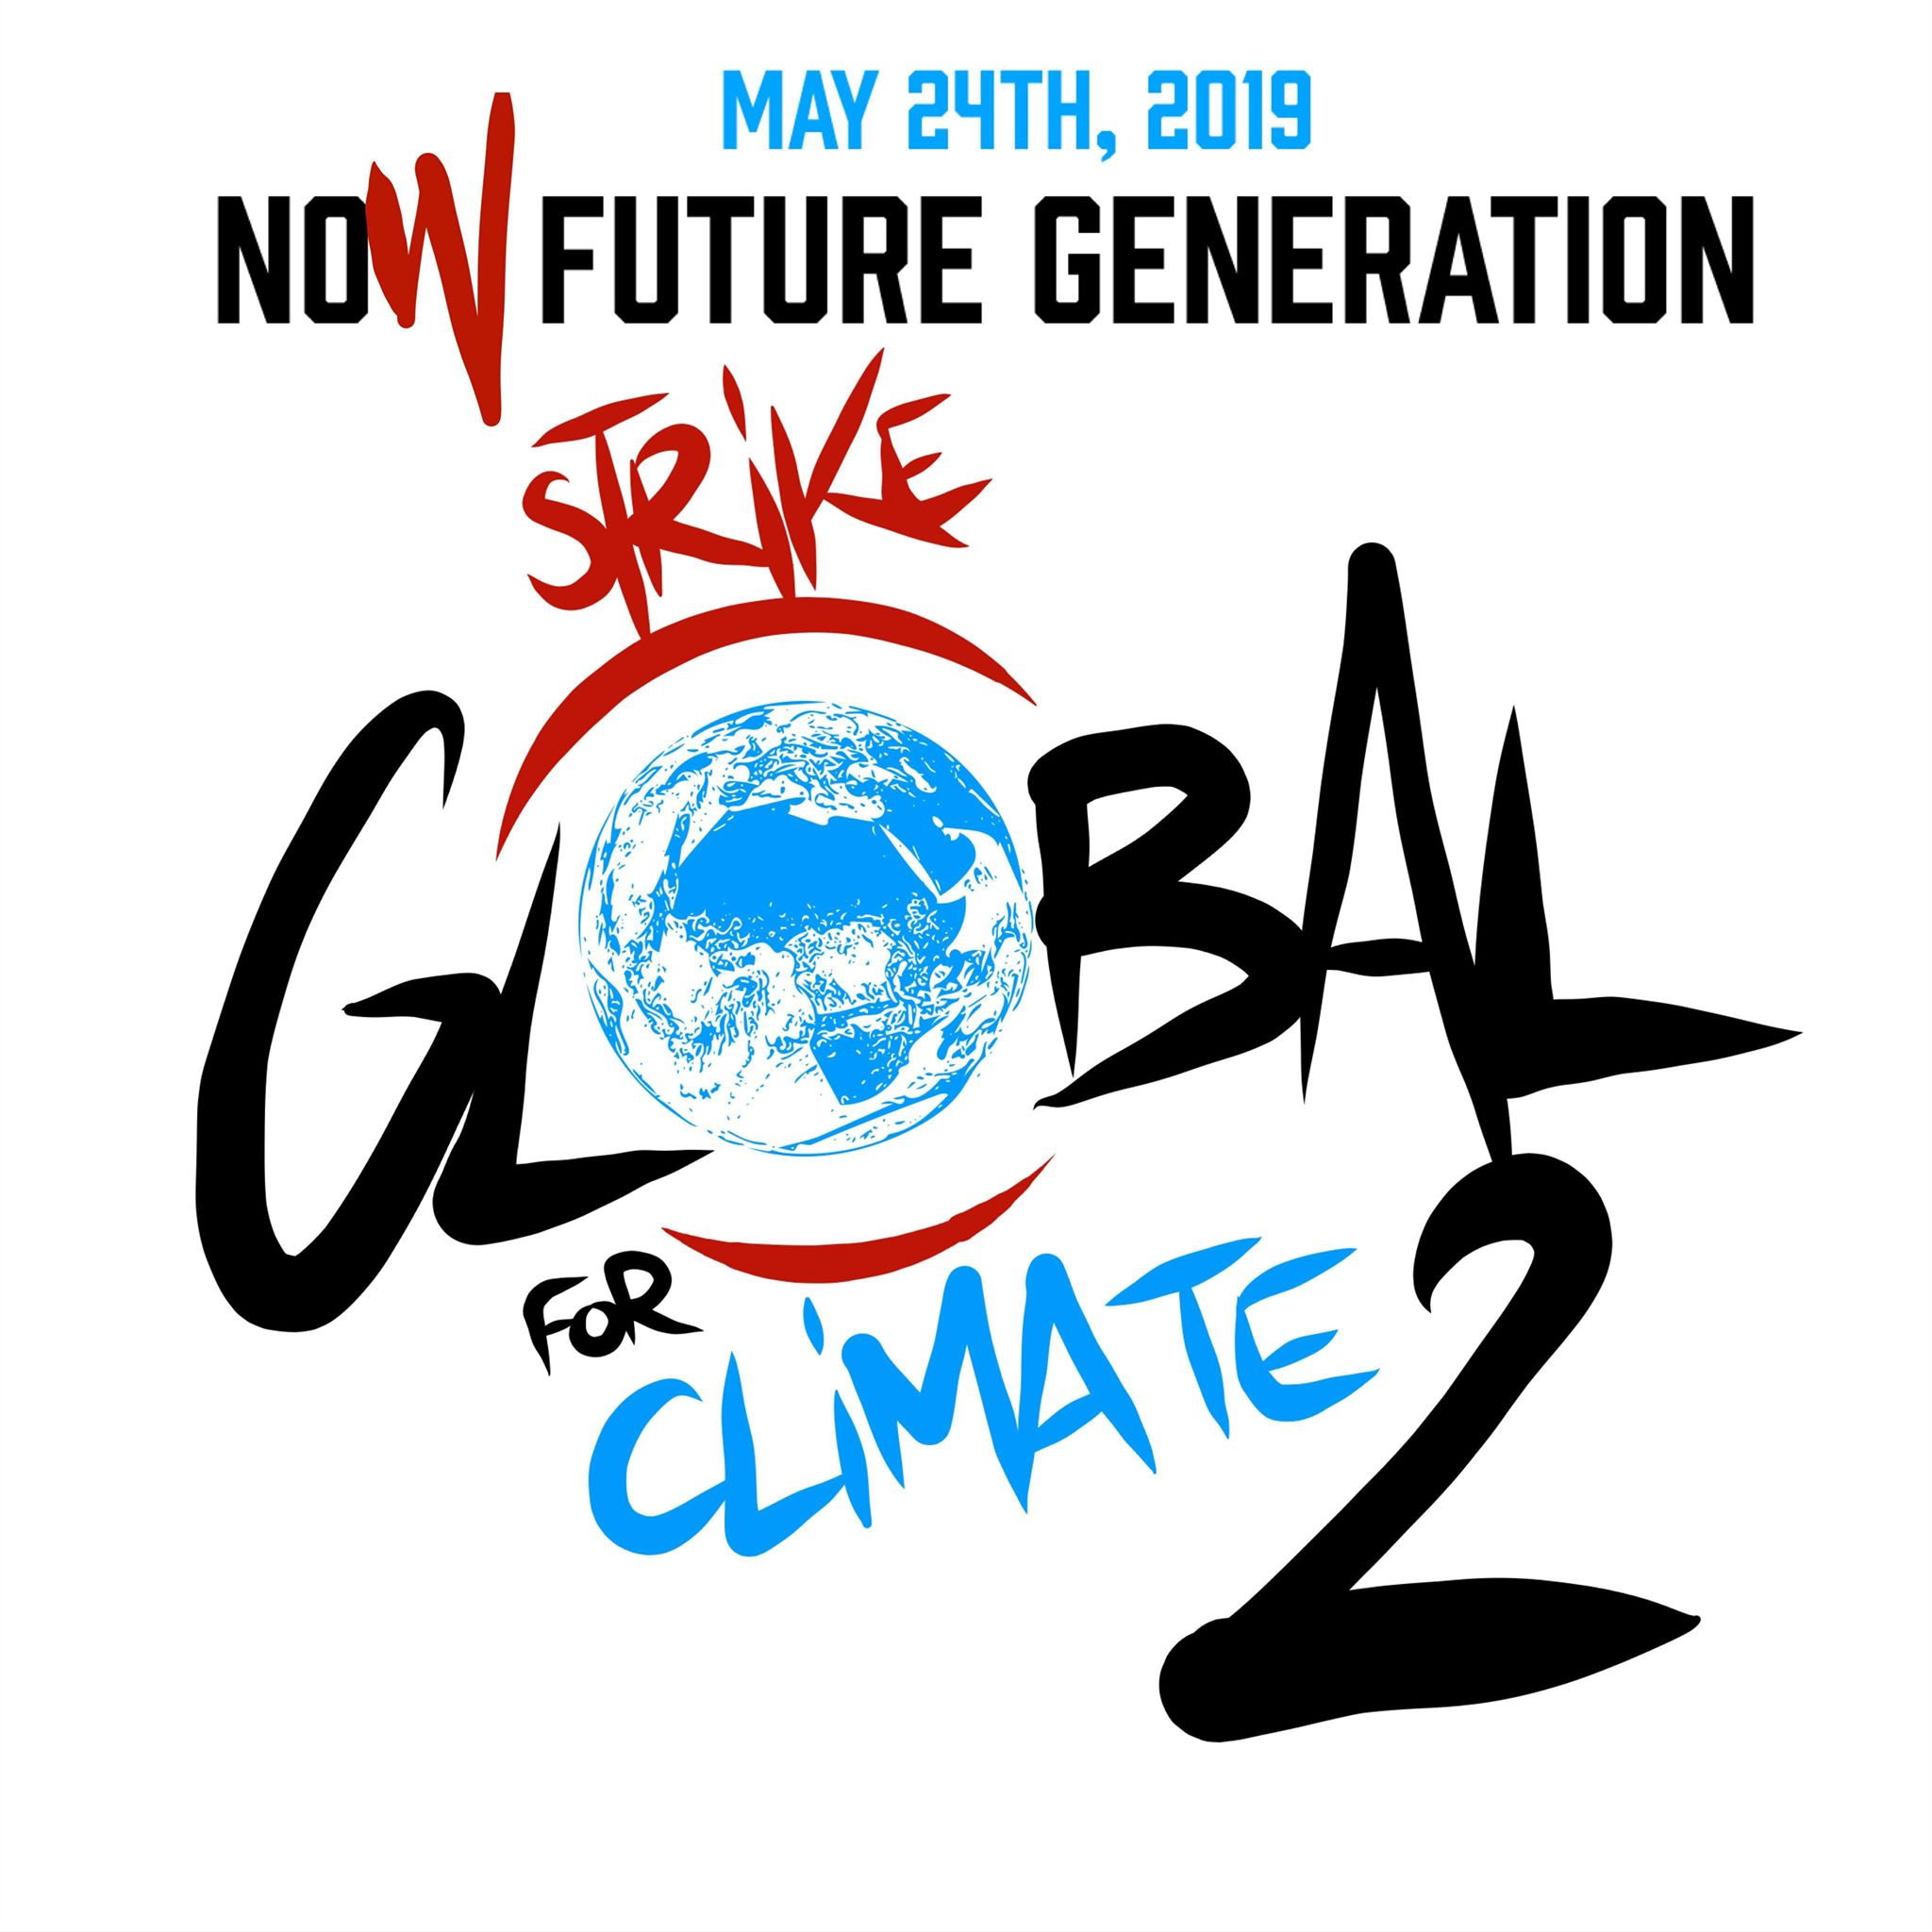 Global Strike for Climate Change by Fridays For Future